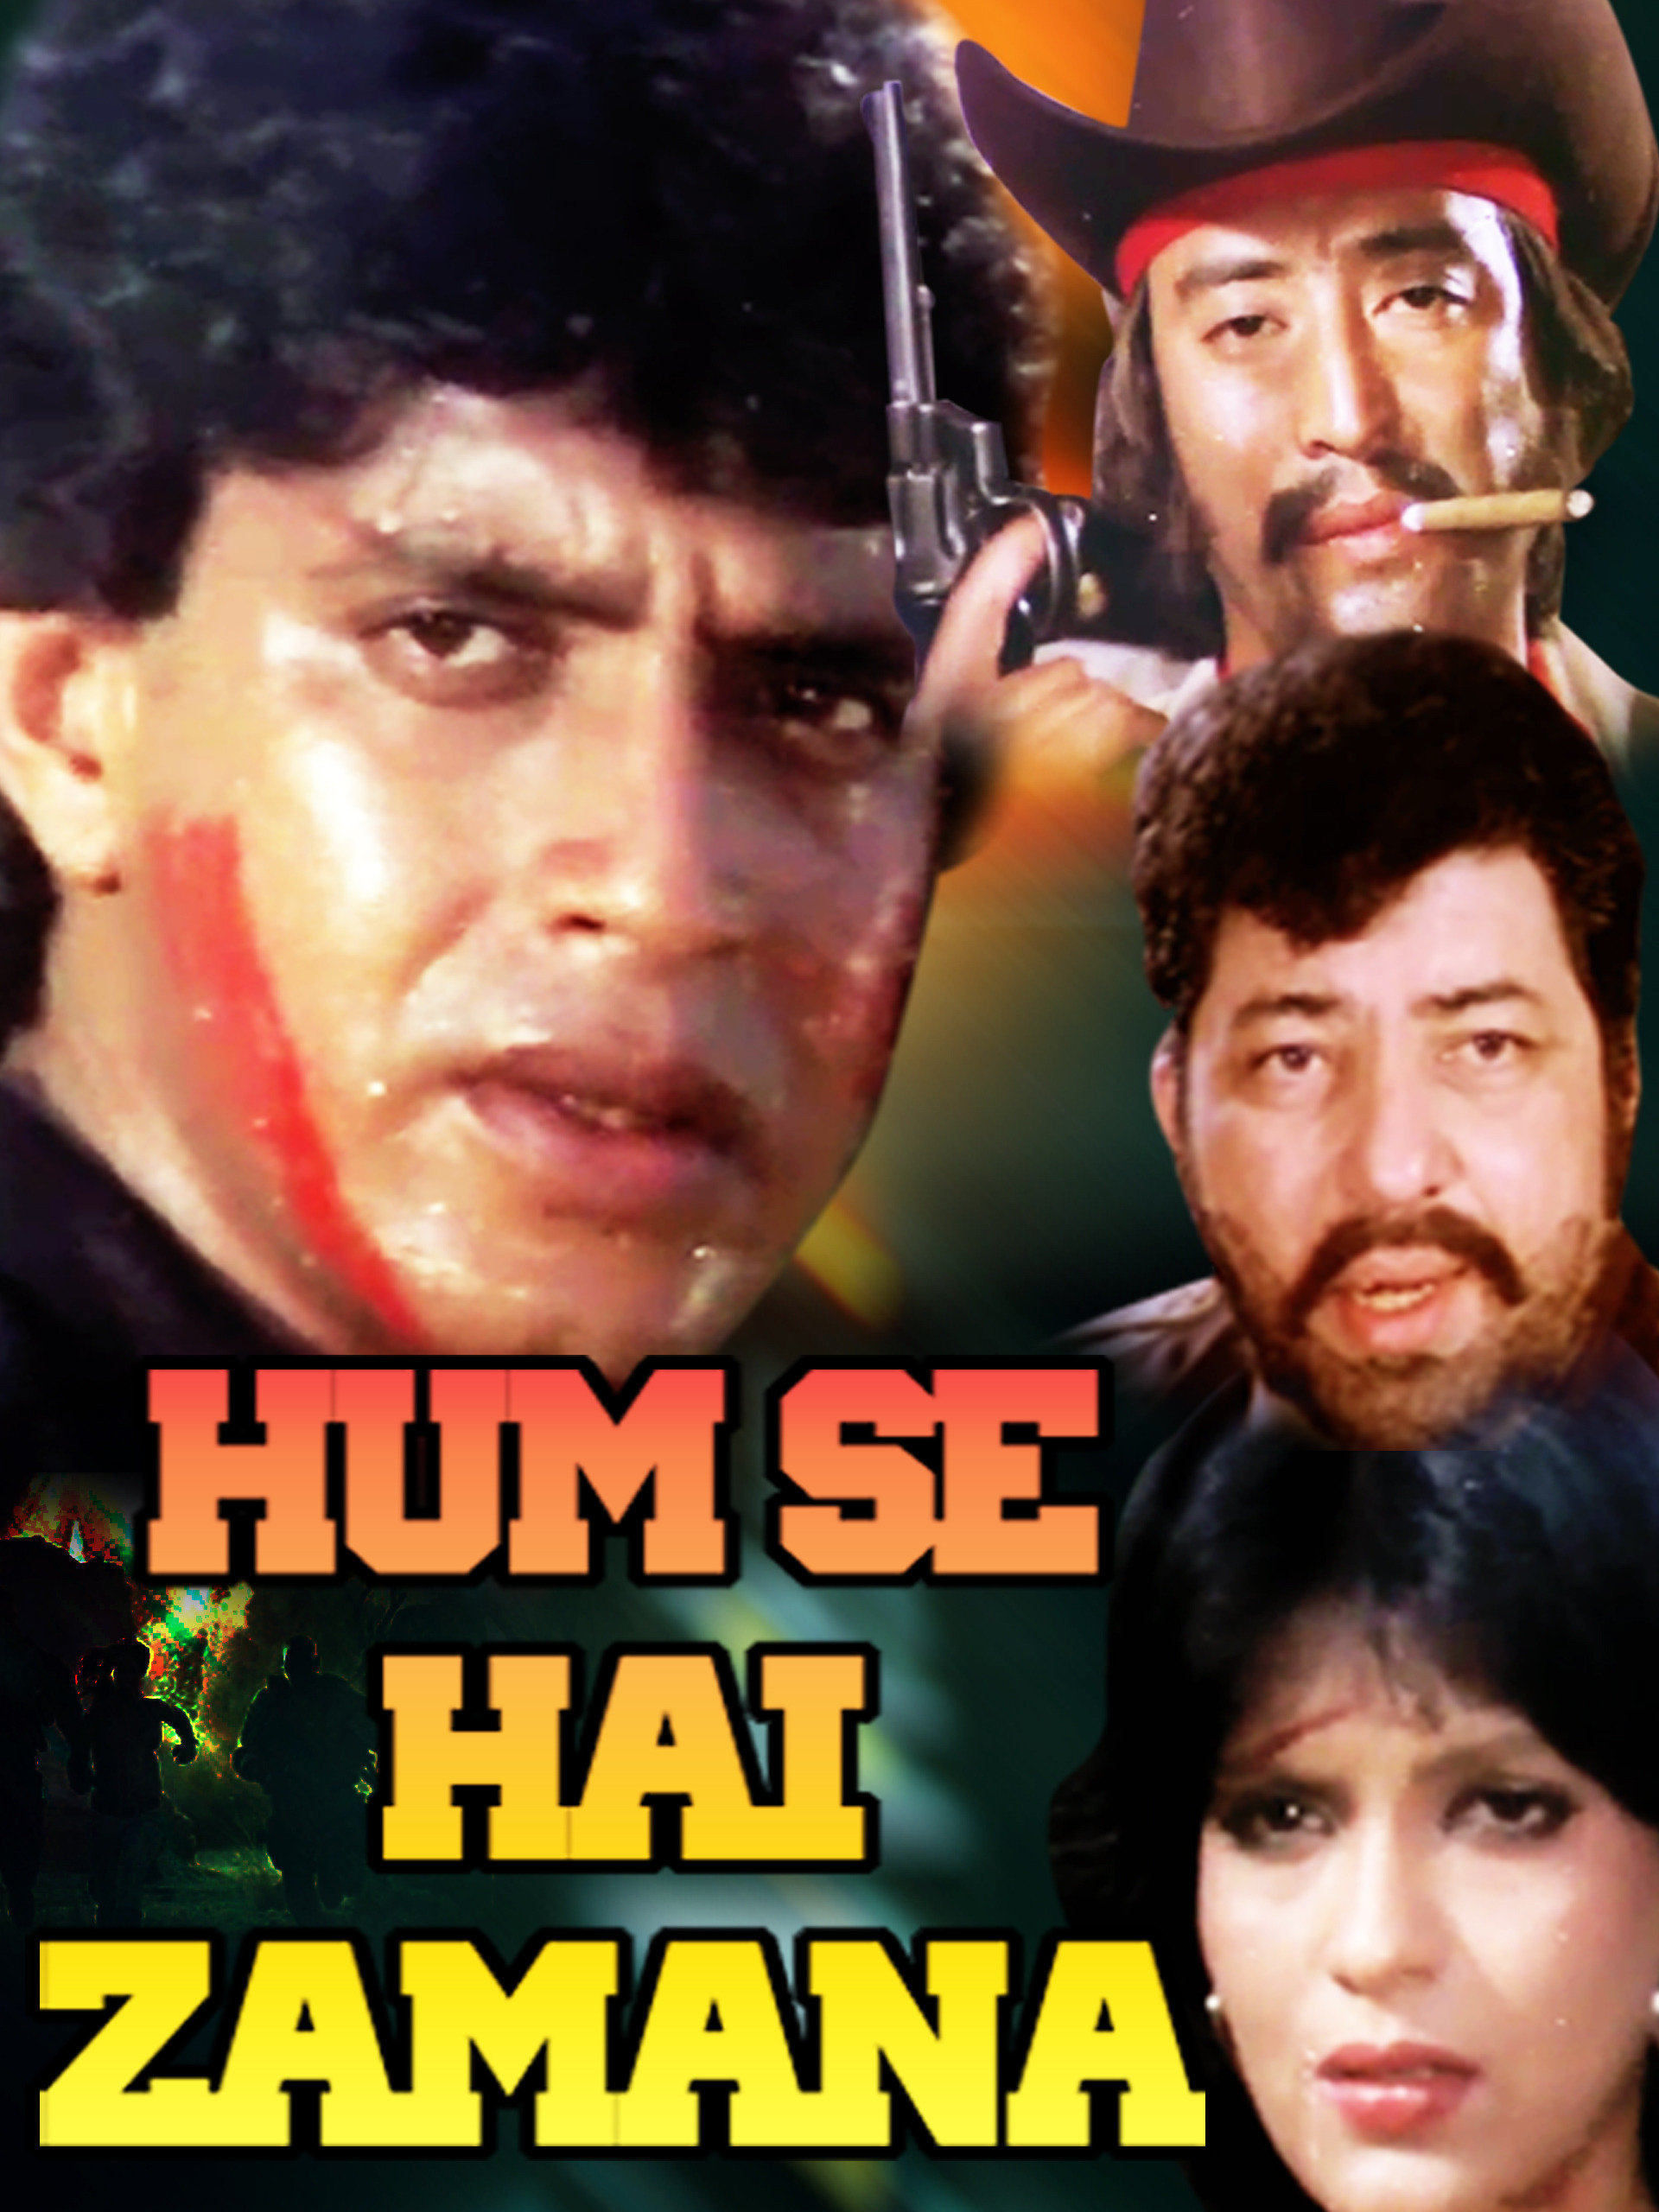 Hum Se Hai Zamana 2020 Bengali Dubbed Full Movie 720p HDRip 900MB MKV